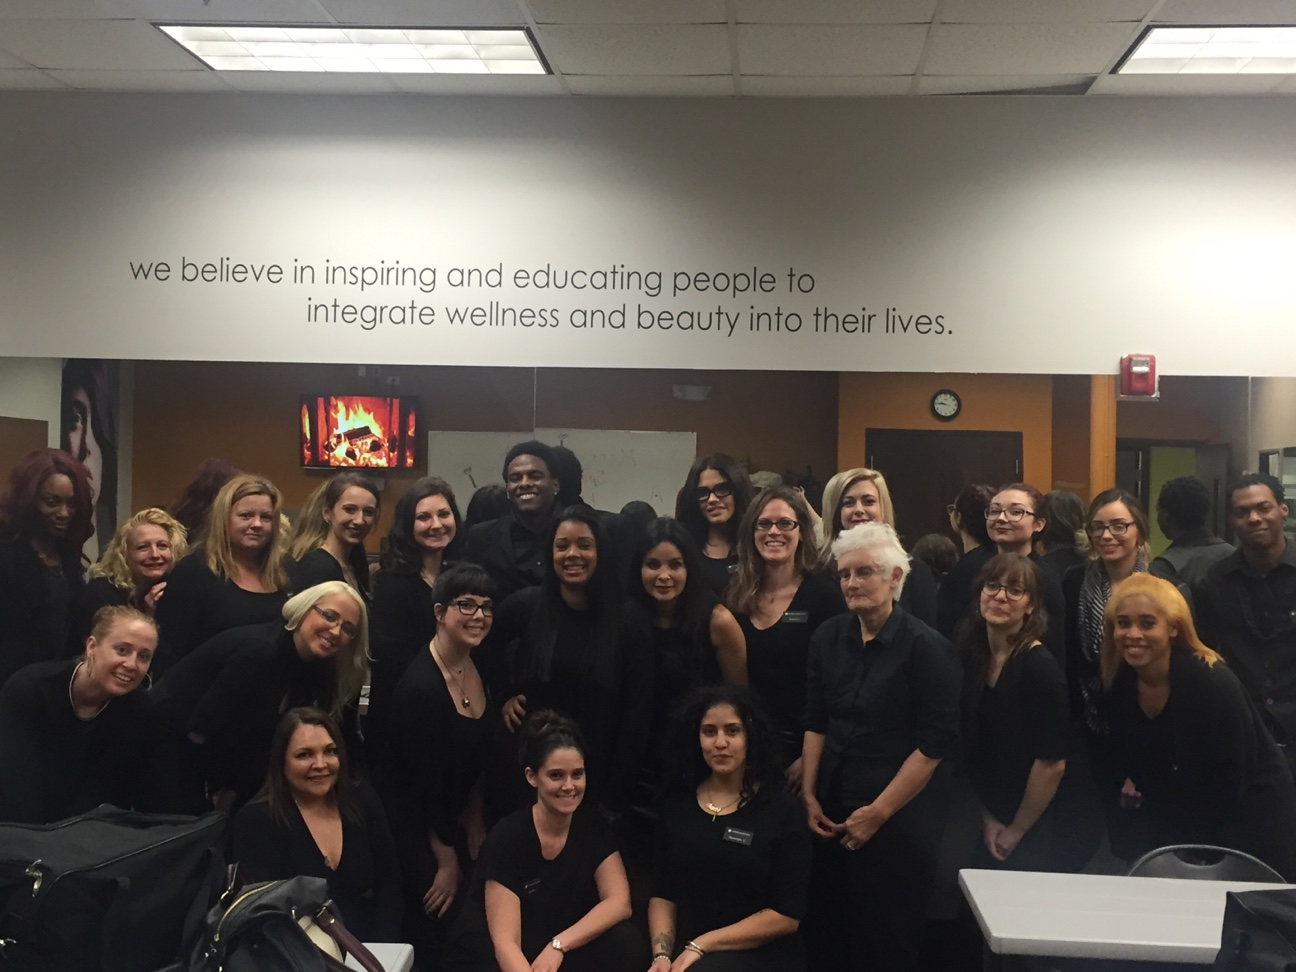 orlando beauty school studens